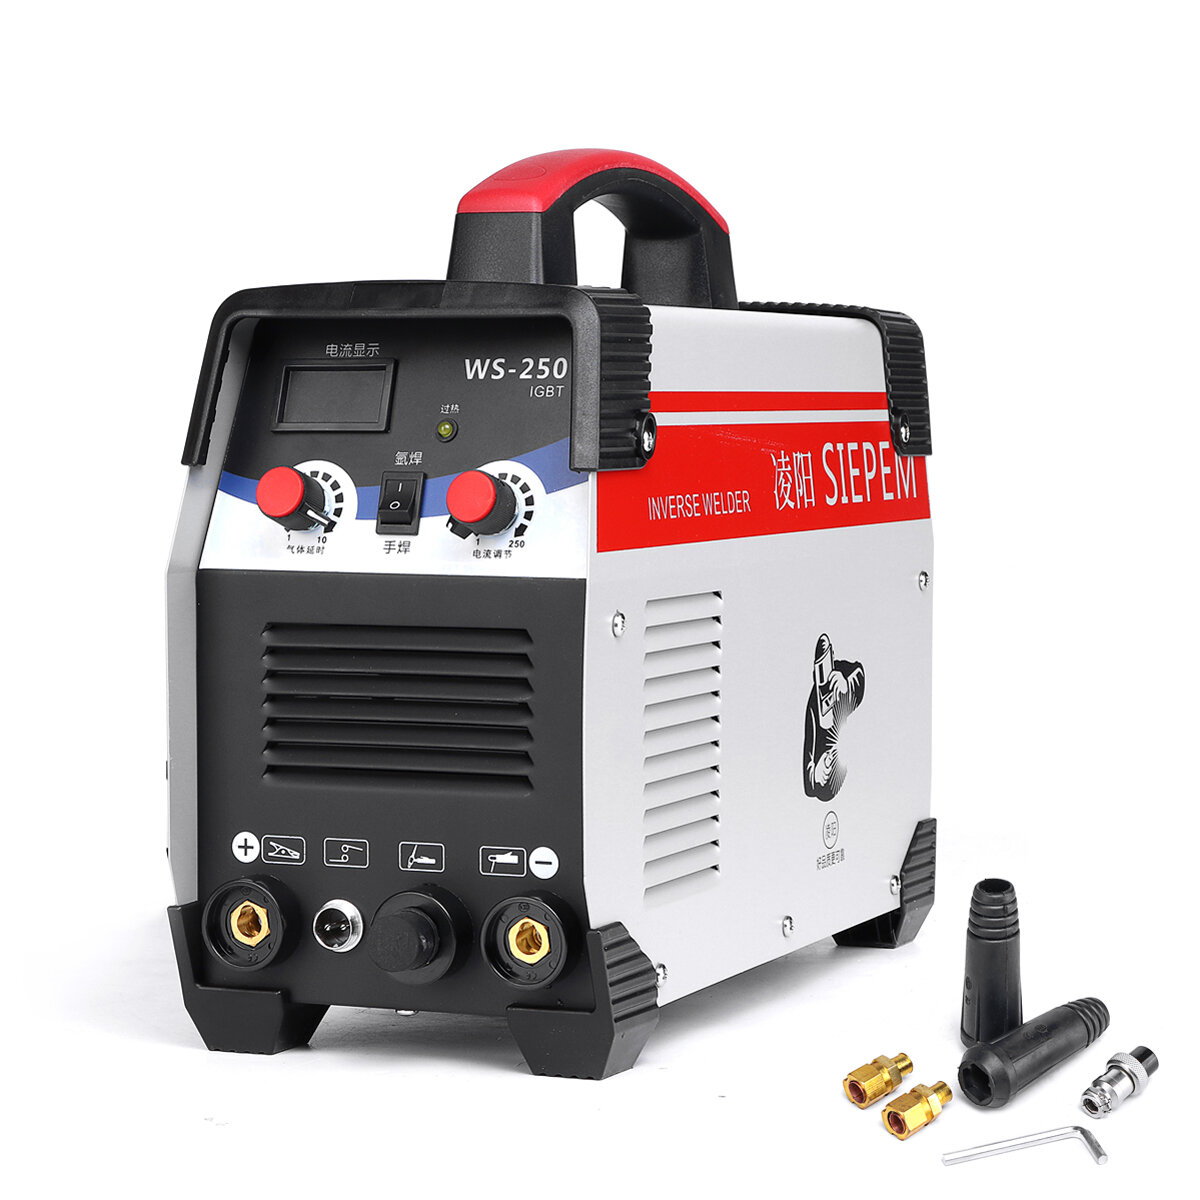 hight resolution of ws 250 250a 220v arc tig 2 in 1 welding machine portable igbt inverter weilding tools cod